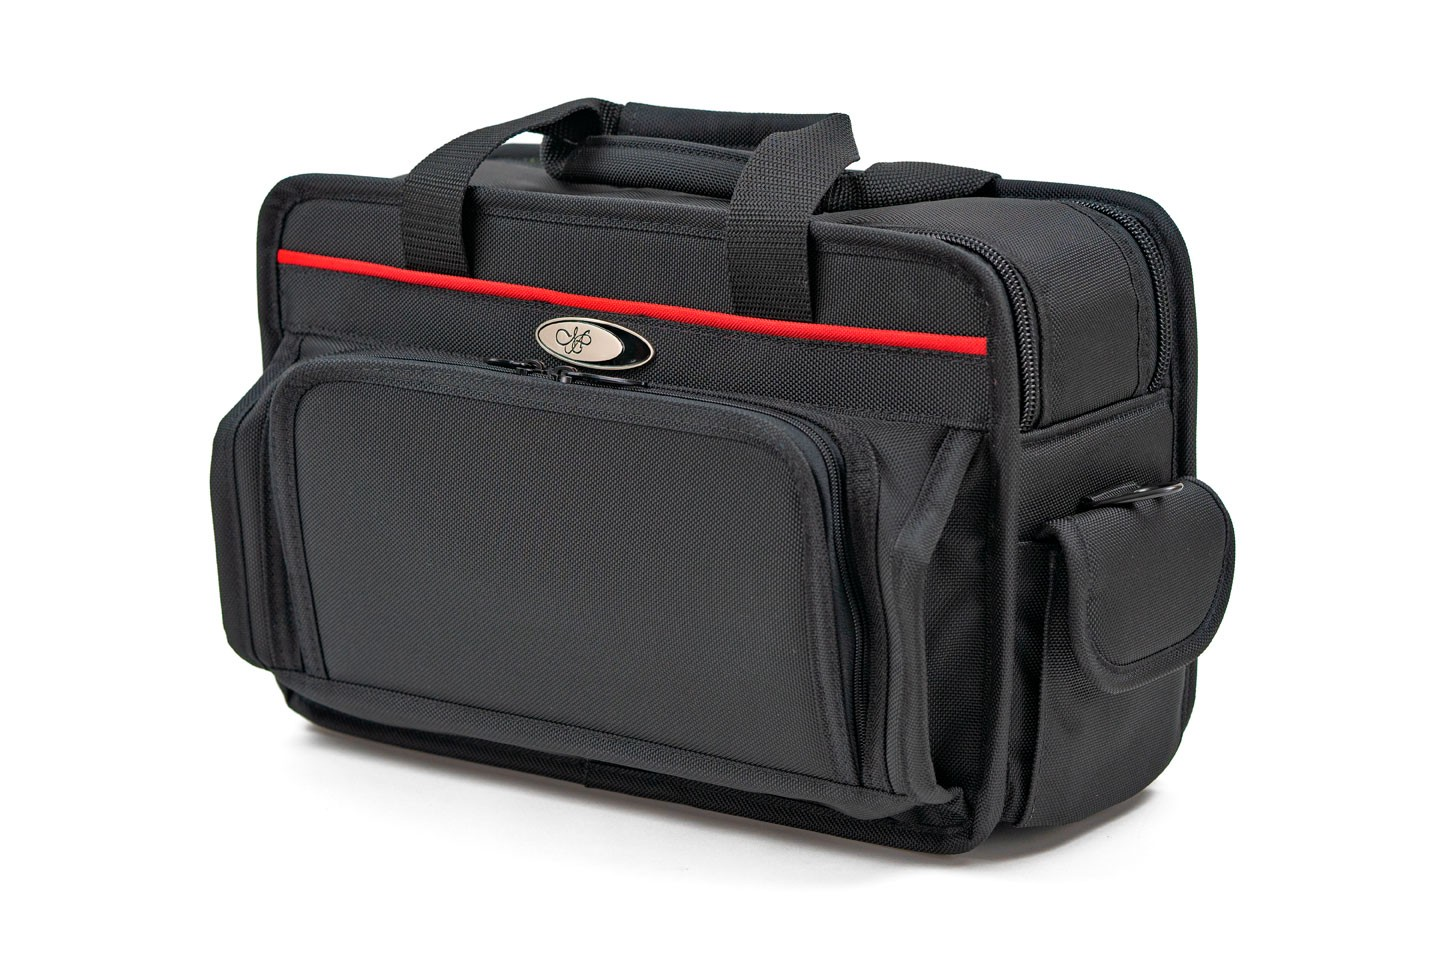 <h1>CAMCB-02B</h1><p>Small Camera Carry Bag</p>